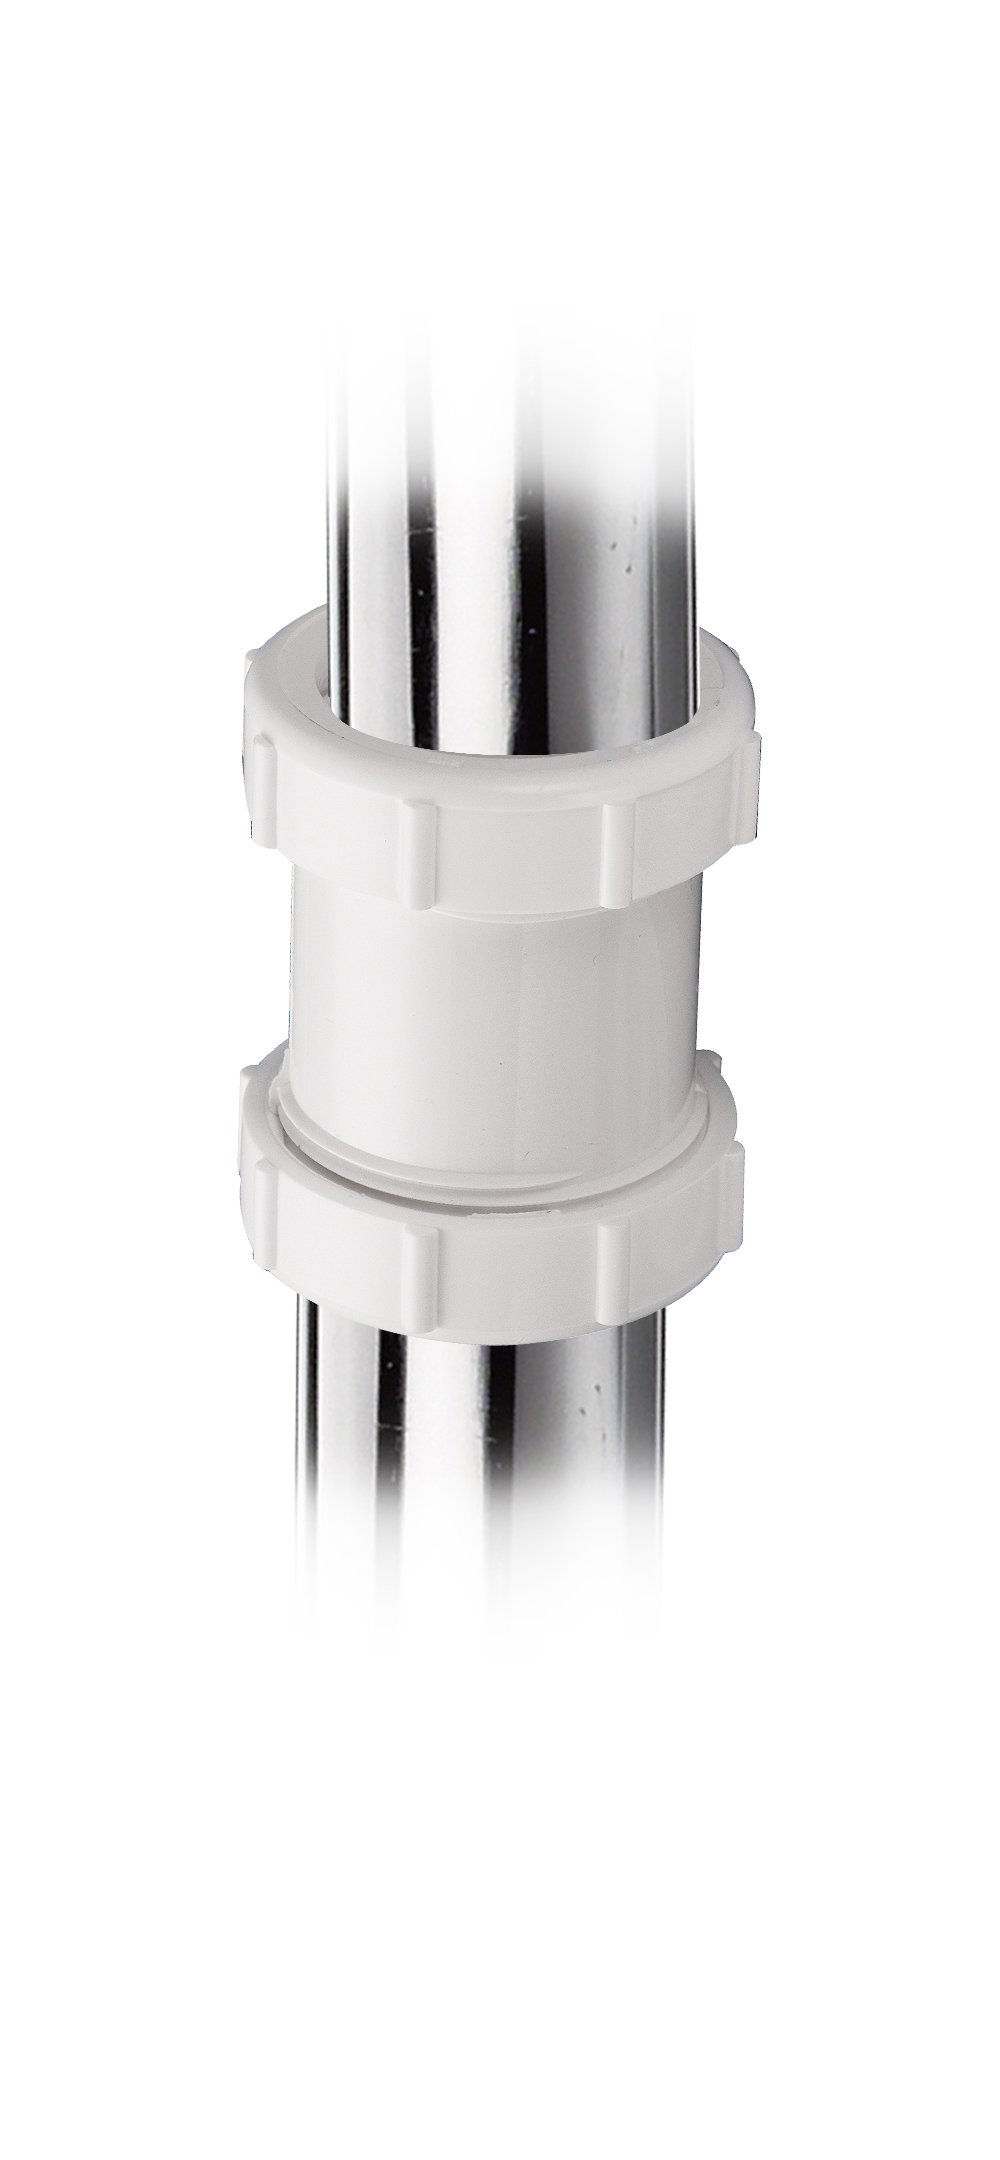 Keeney 46WK 1-1/2-Inch or 1-1/4-Inch by 1-1/2-Inch Straight Extension Coupling Trap Adapter, White